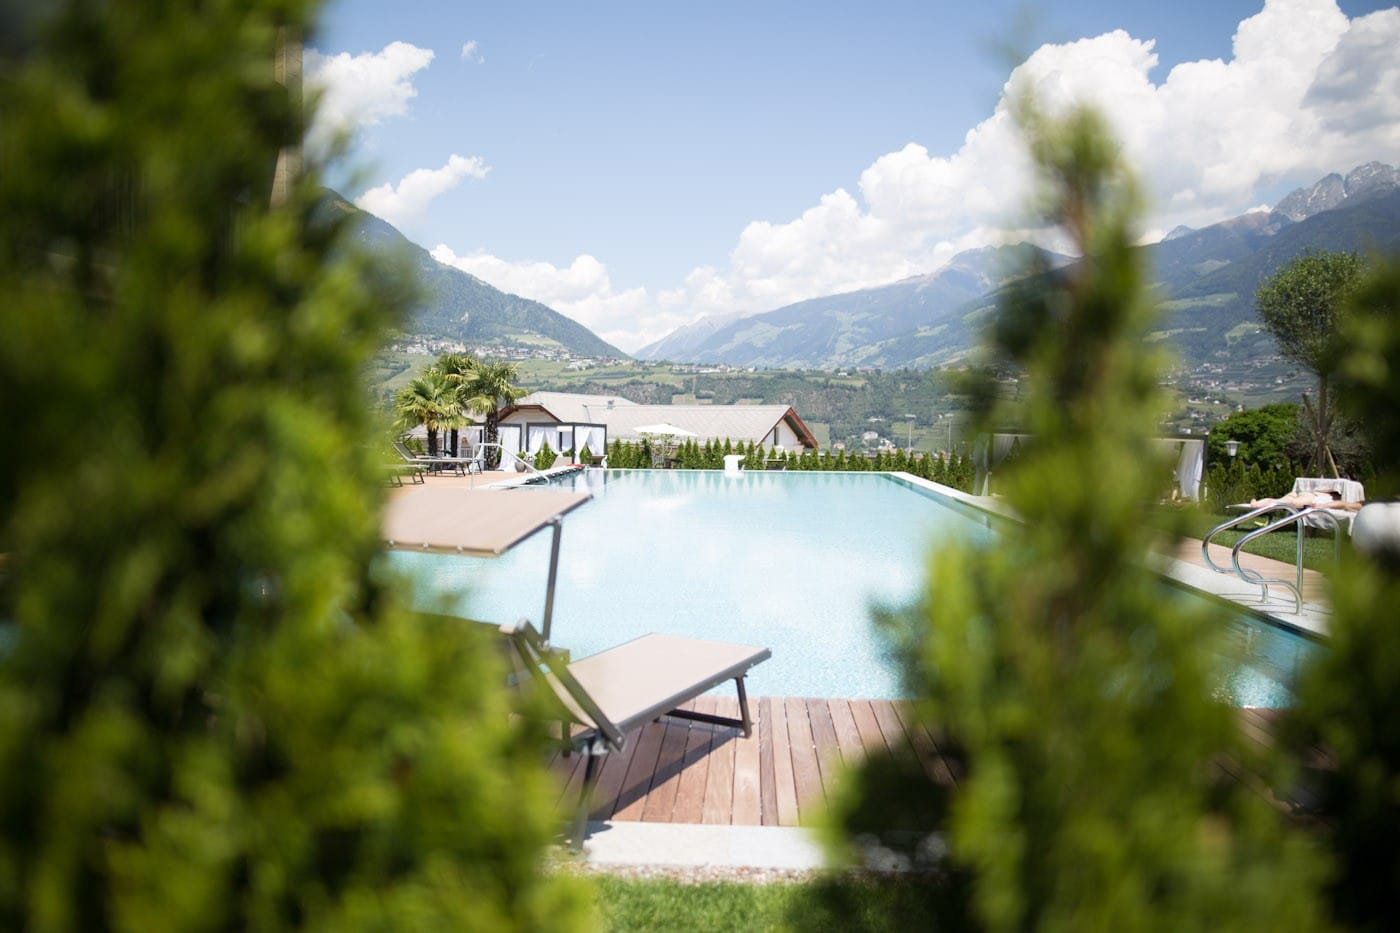 Pool with a view in der Meran Lodge.